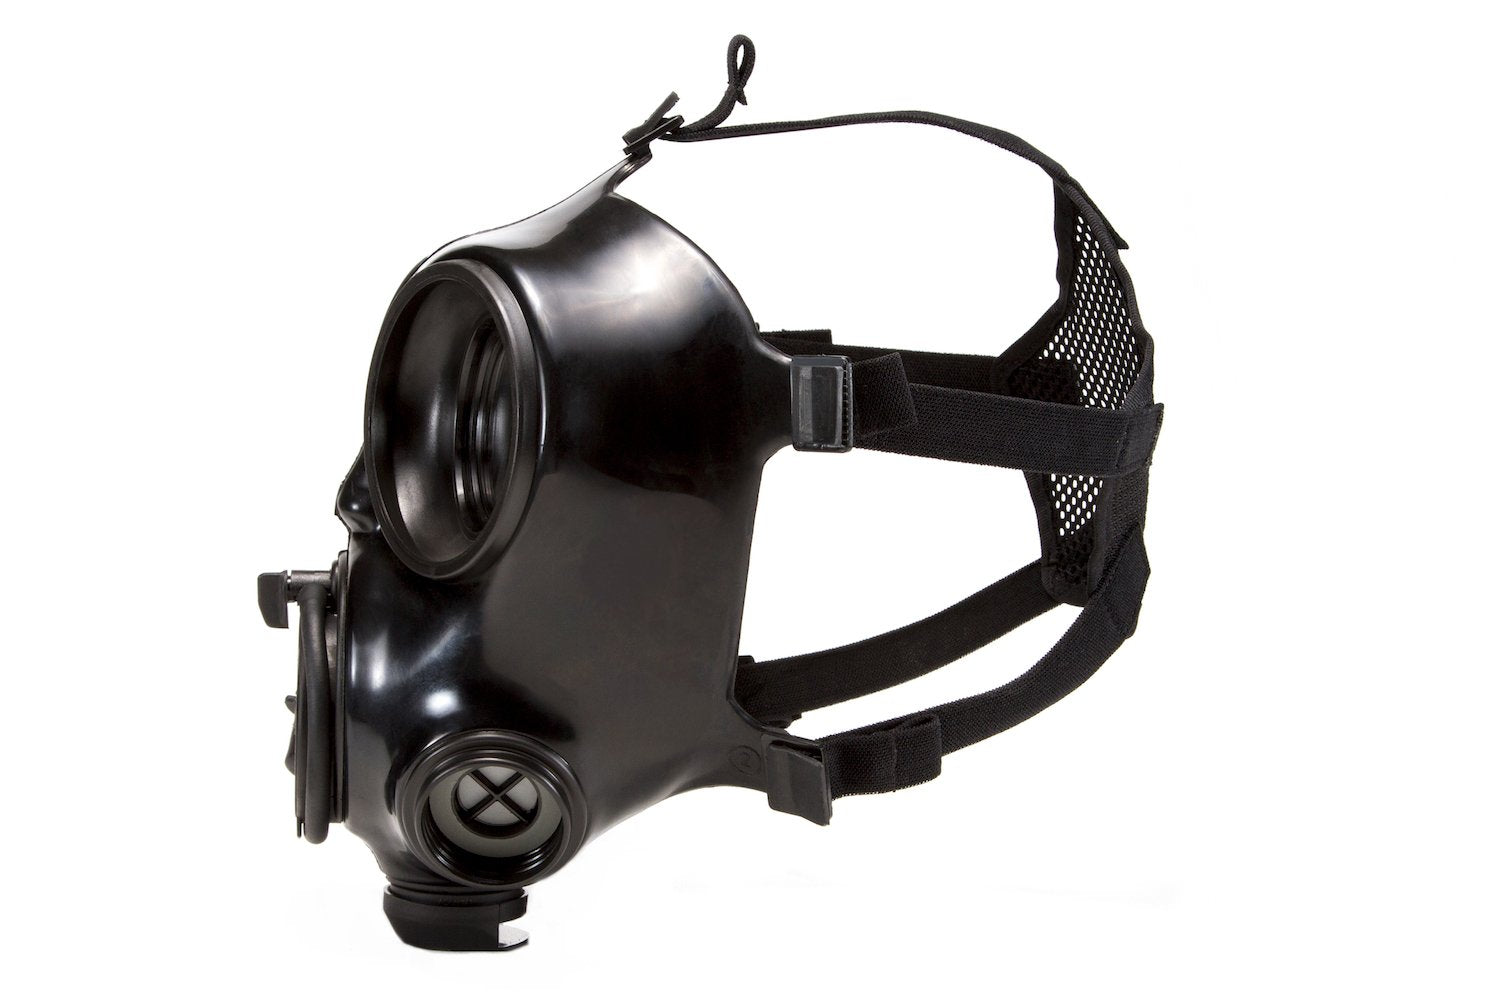 CM-7M military gas mask as part of the MIRA Safety Nuclear Survival Kit